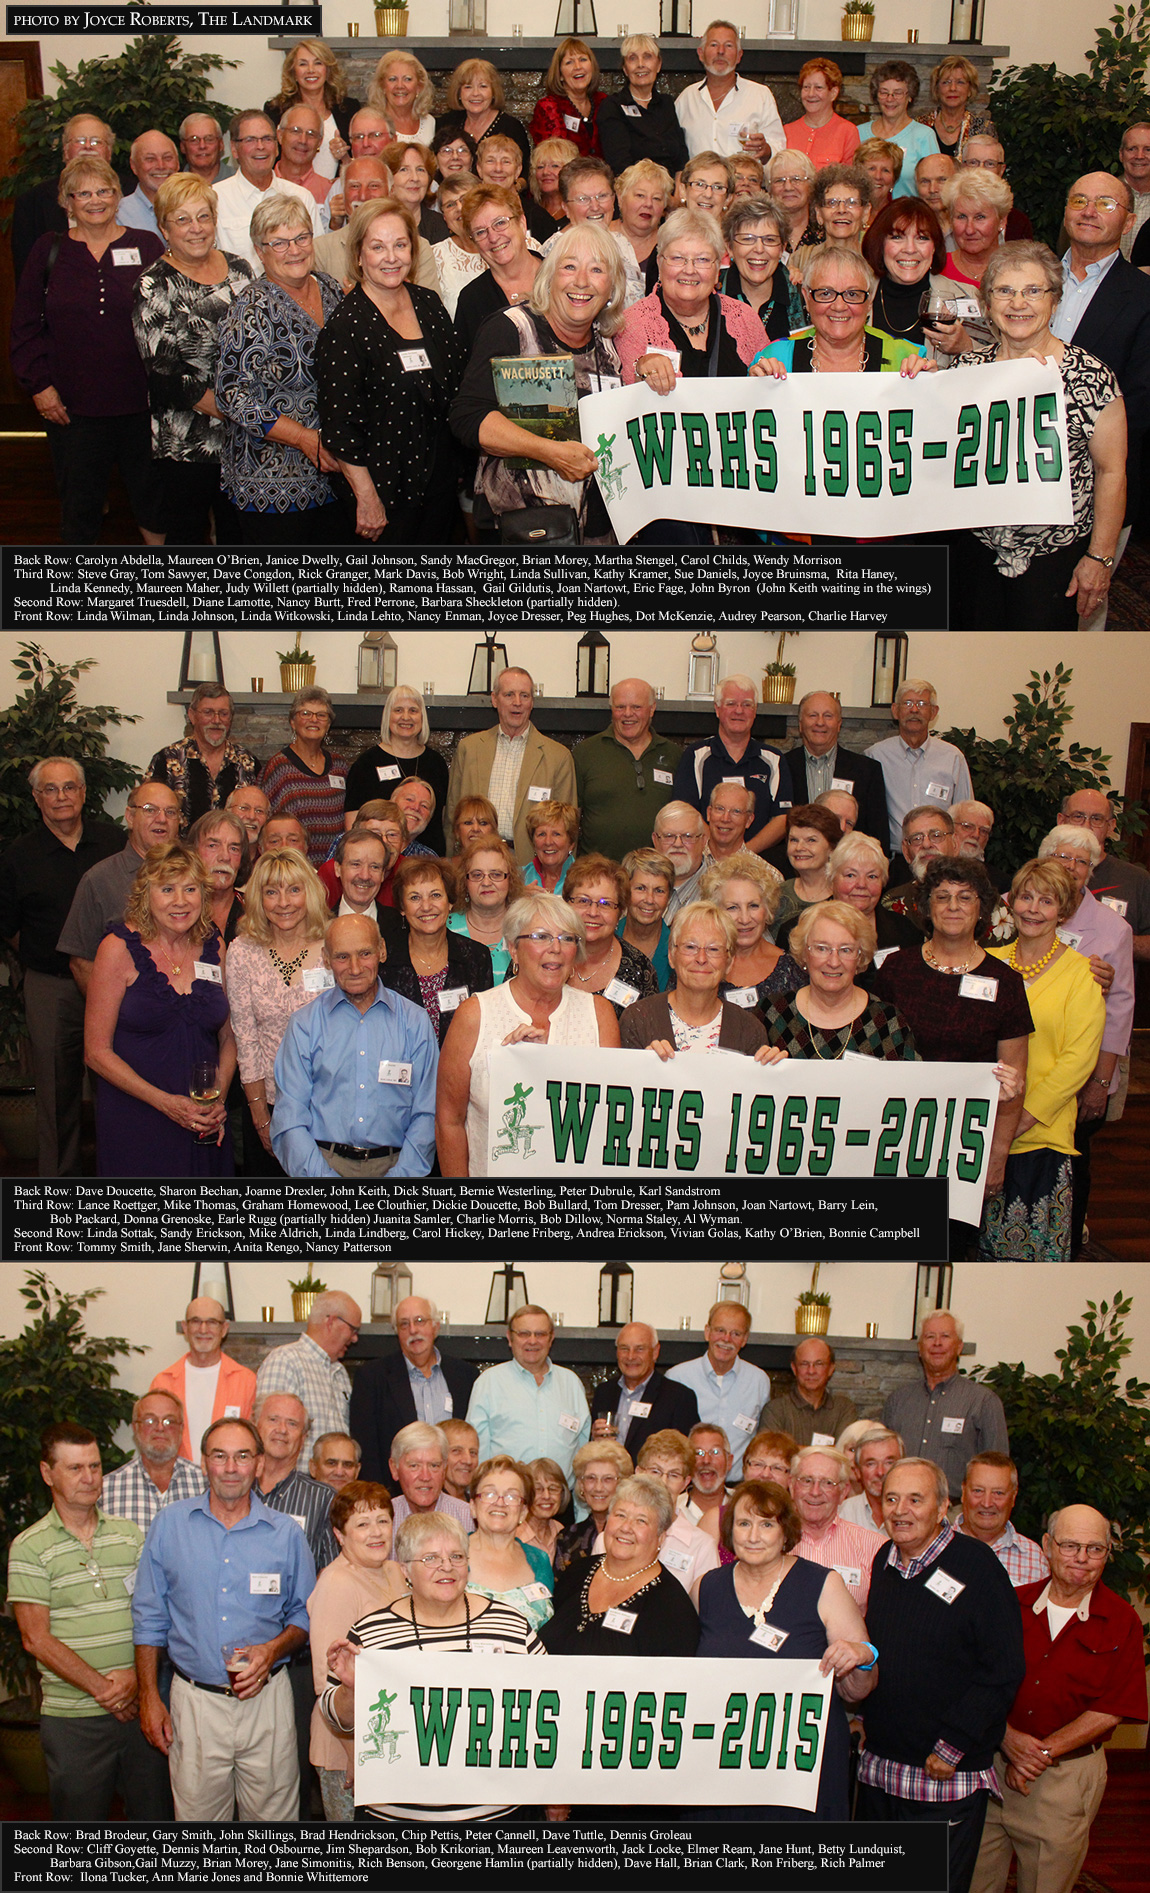 WRHS Class of 1965 - 50th Reunion photo by The Landmark